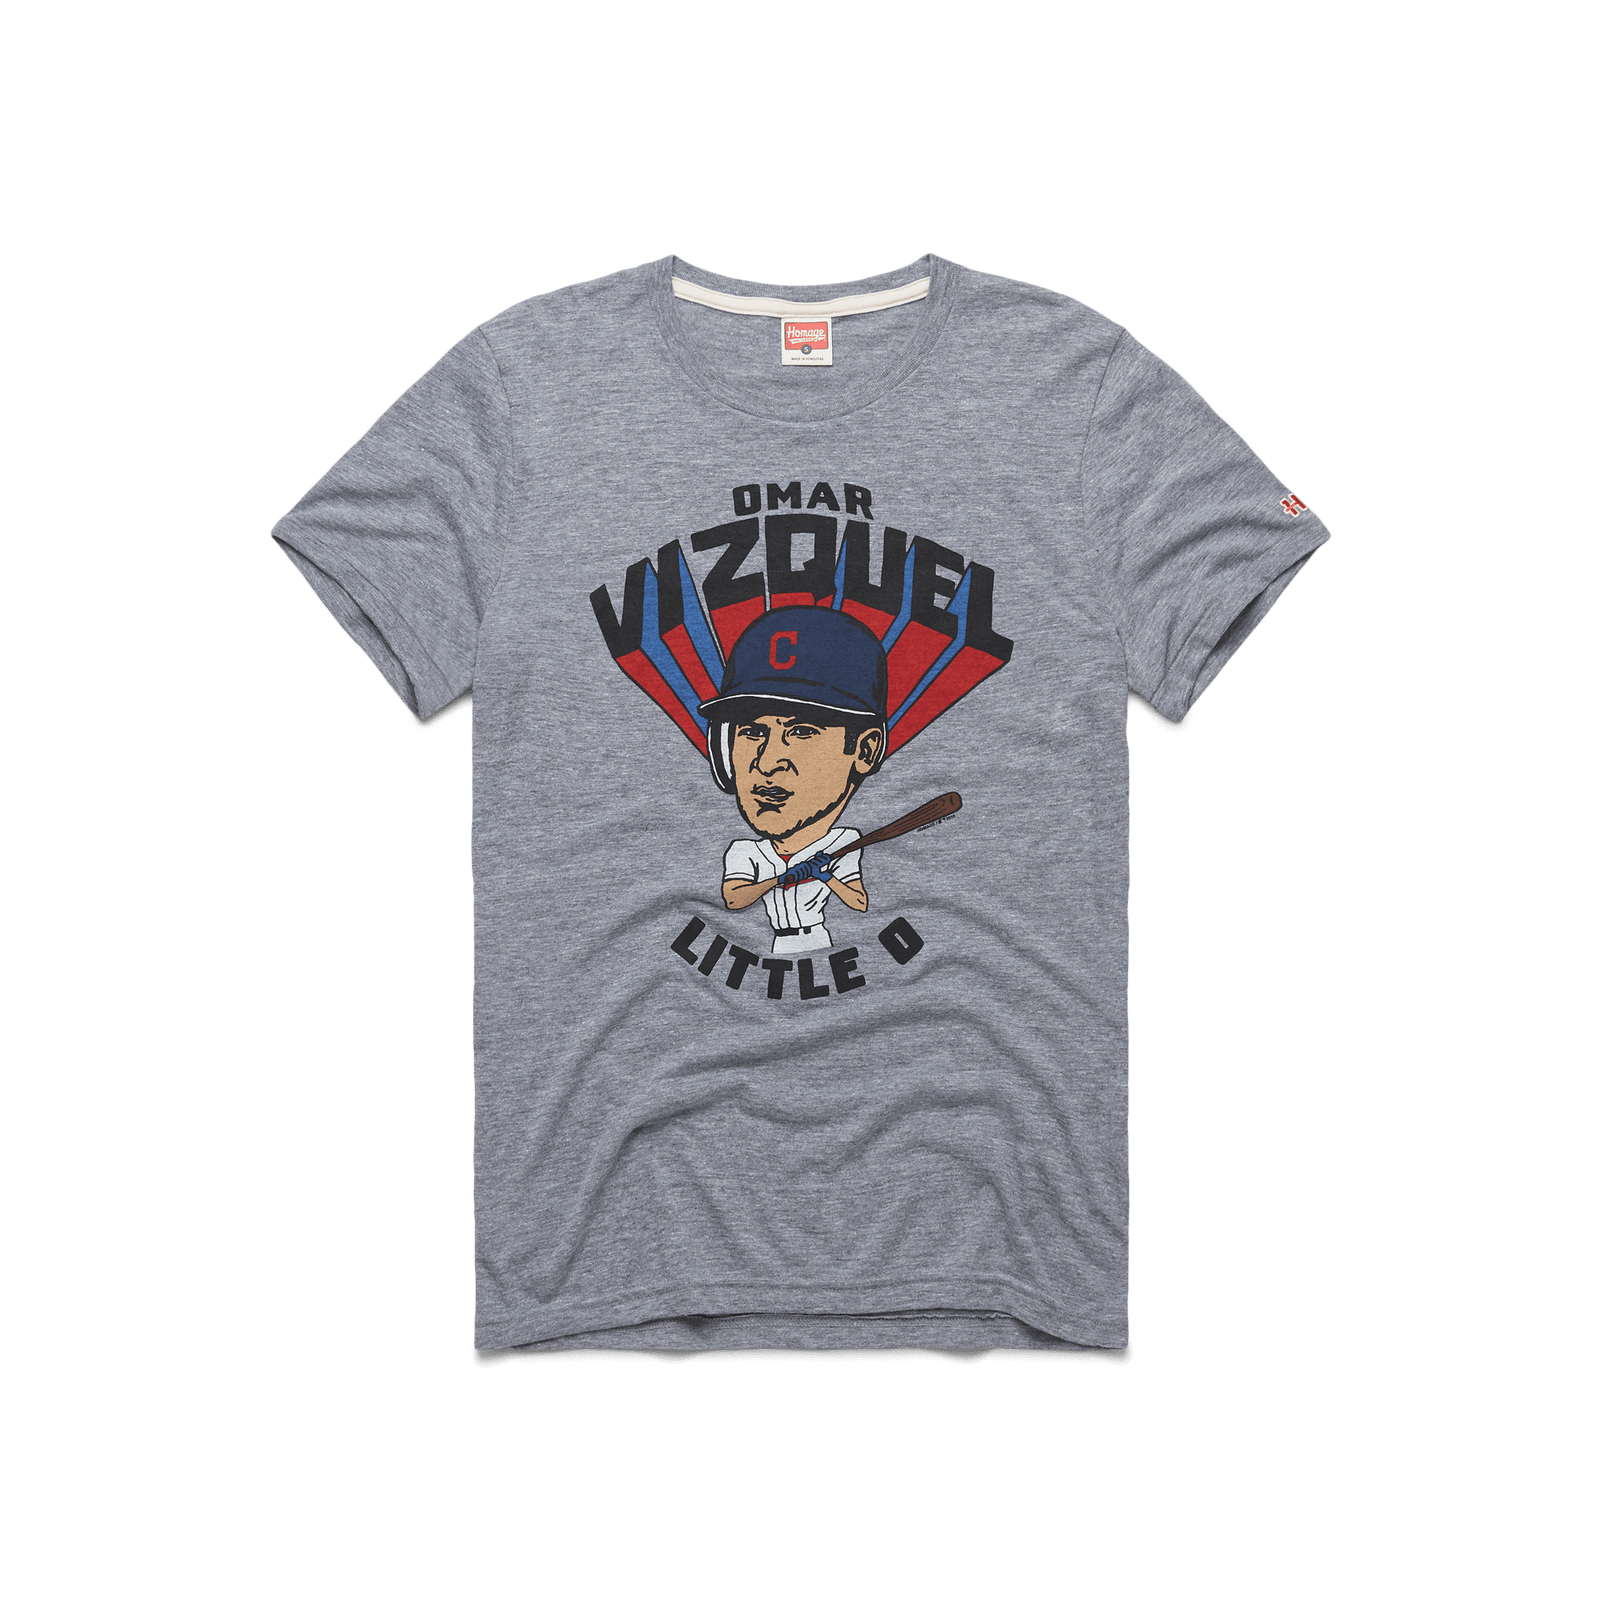 Omar Vizquel Little O